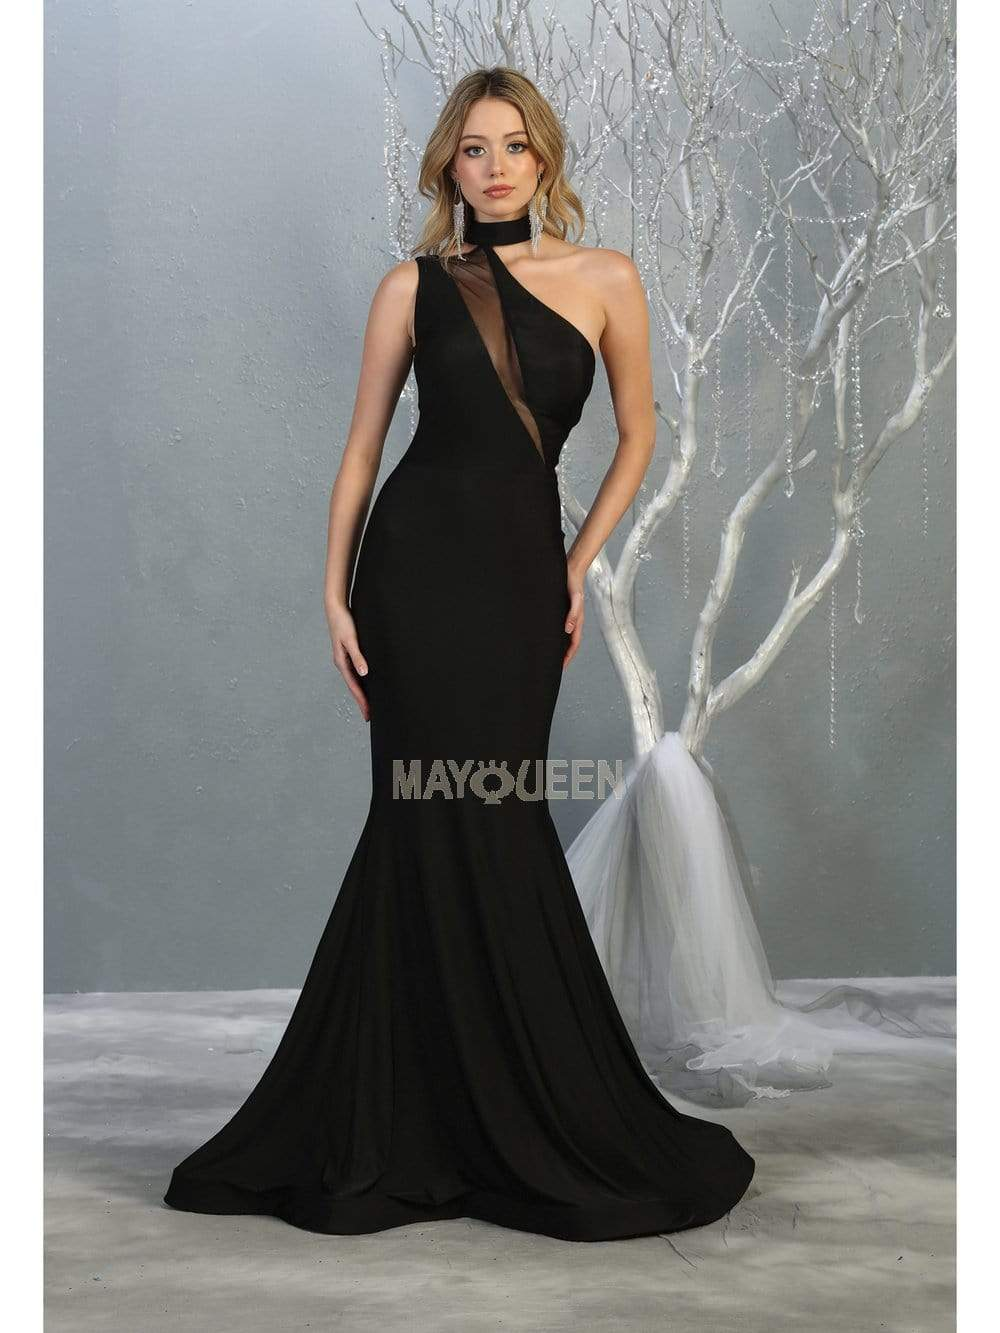 May Queen - MQ1773 Choker Ornate Illusion Paneled Trumpet Dress Evening Dresses 2 / Black